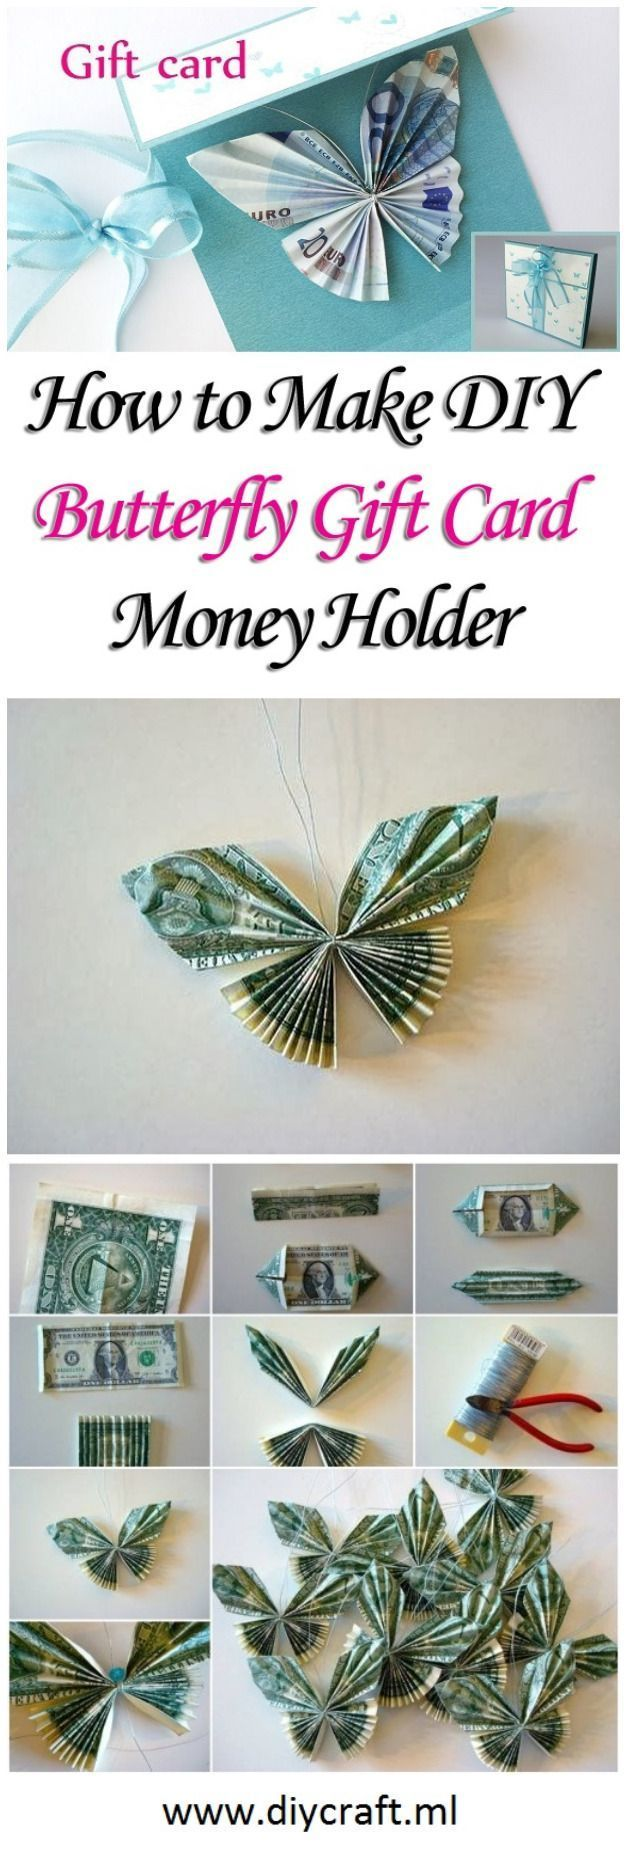 Machen Sie DIY Butterfly Gift Card Money Holder - #Butterfly #Card #DIY #Gift #H...